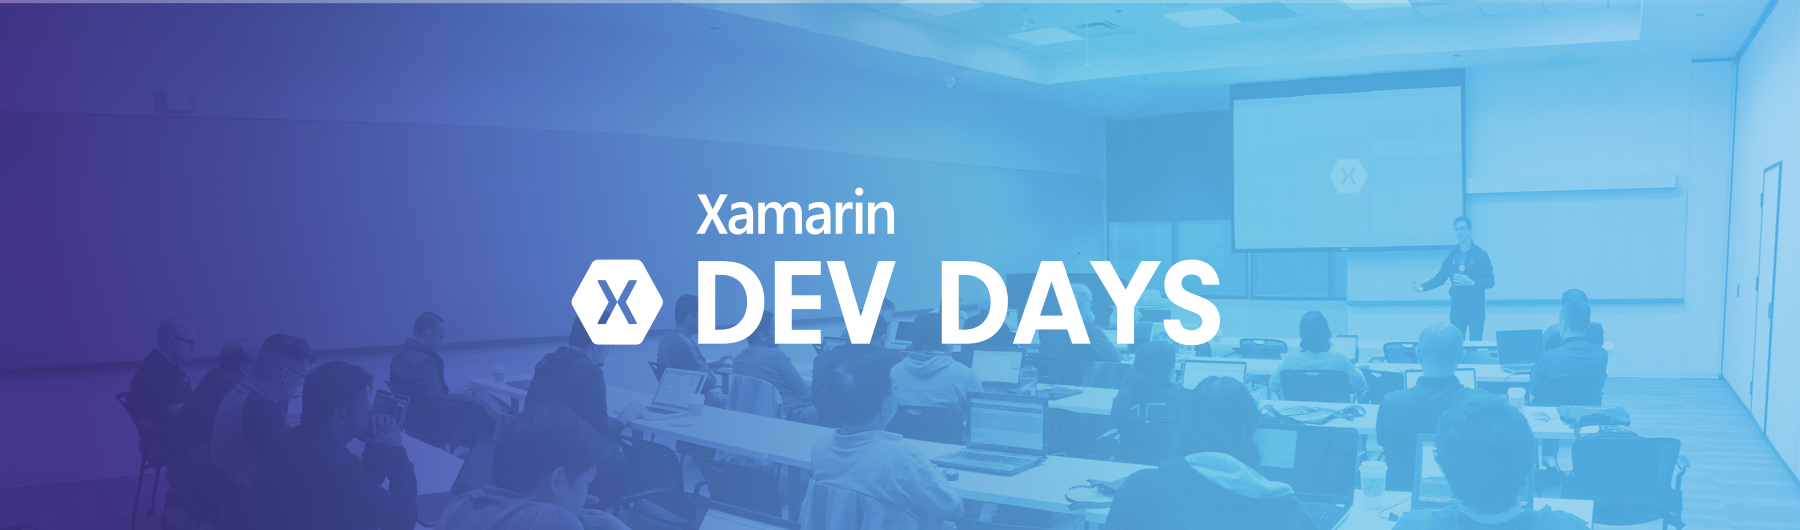 Xamarin Dev Days - Portland